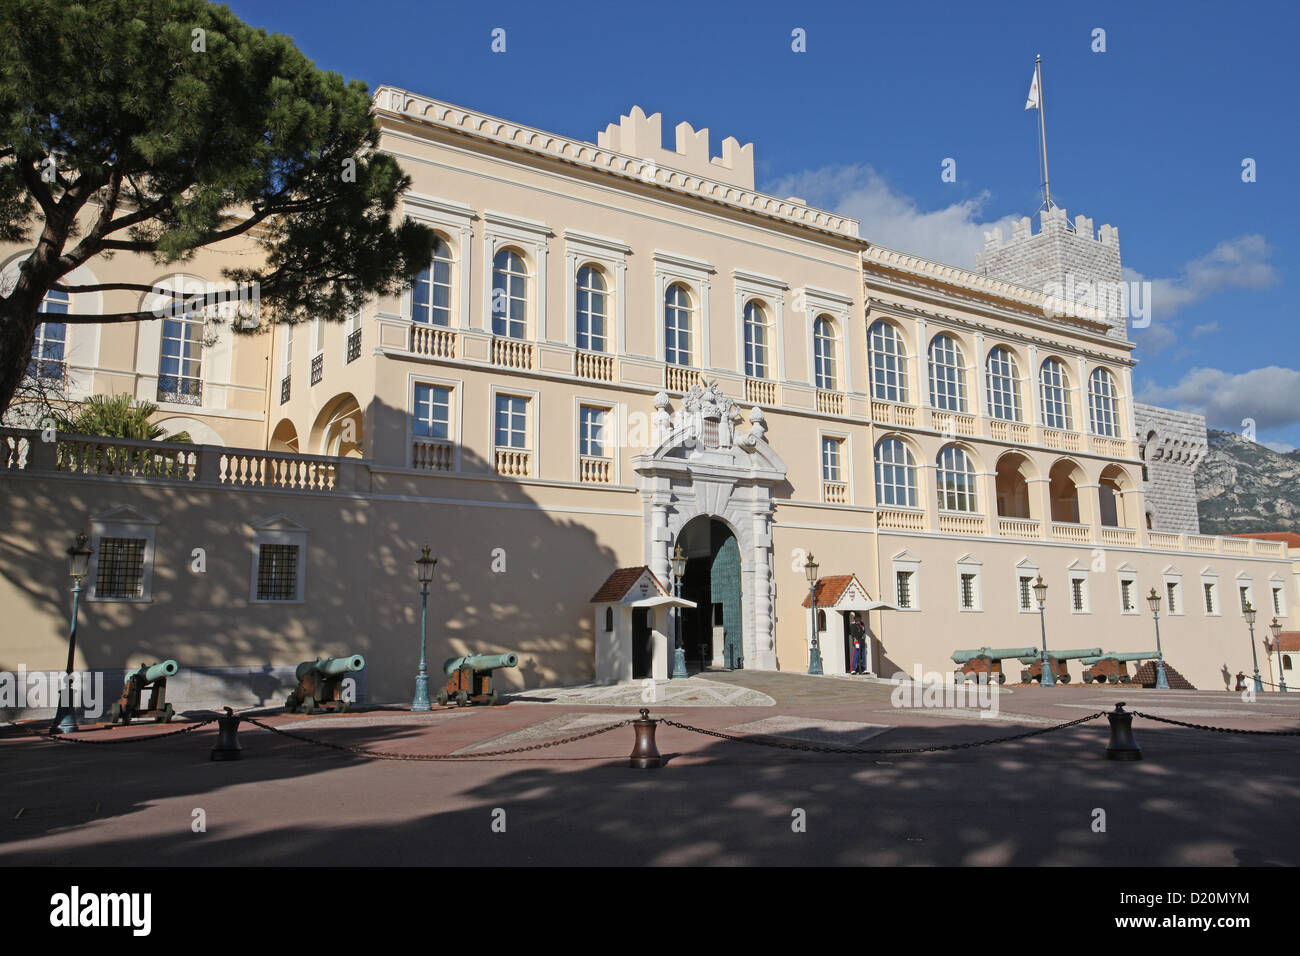 The Palace of Monte Carlo Monaco - Stock Image